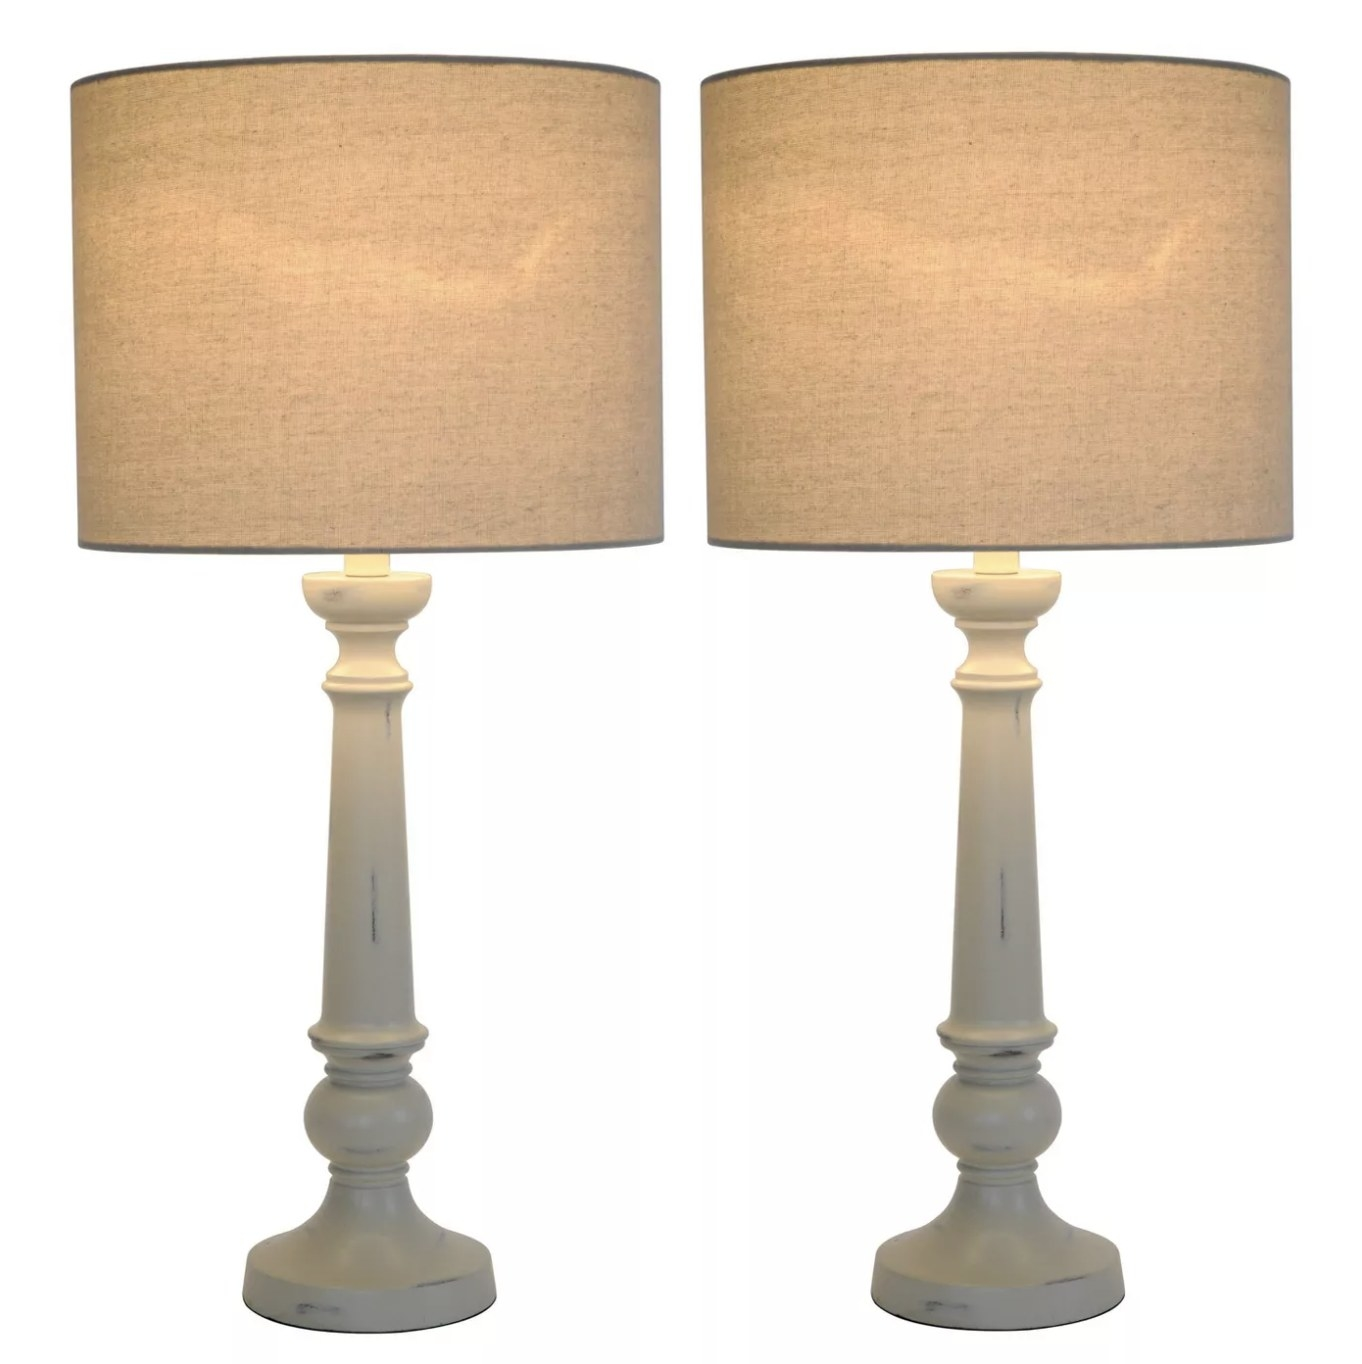 The two lamps